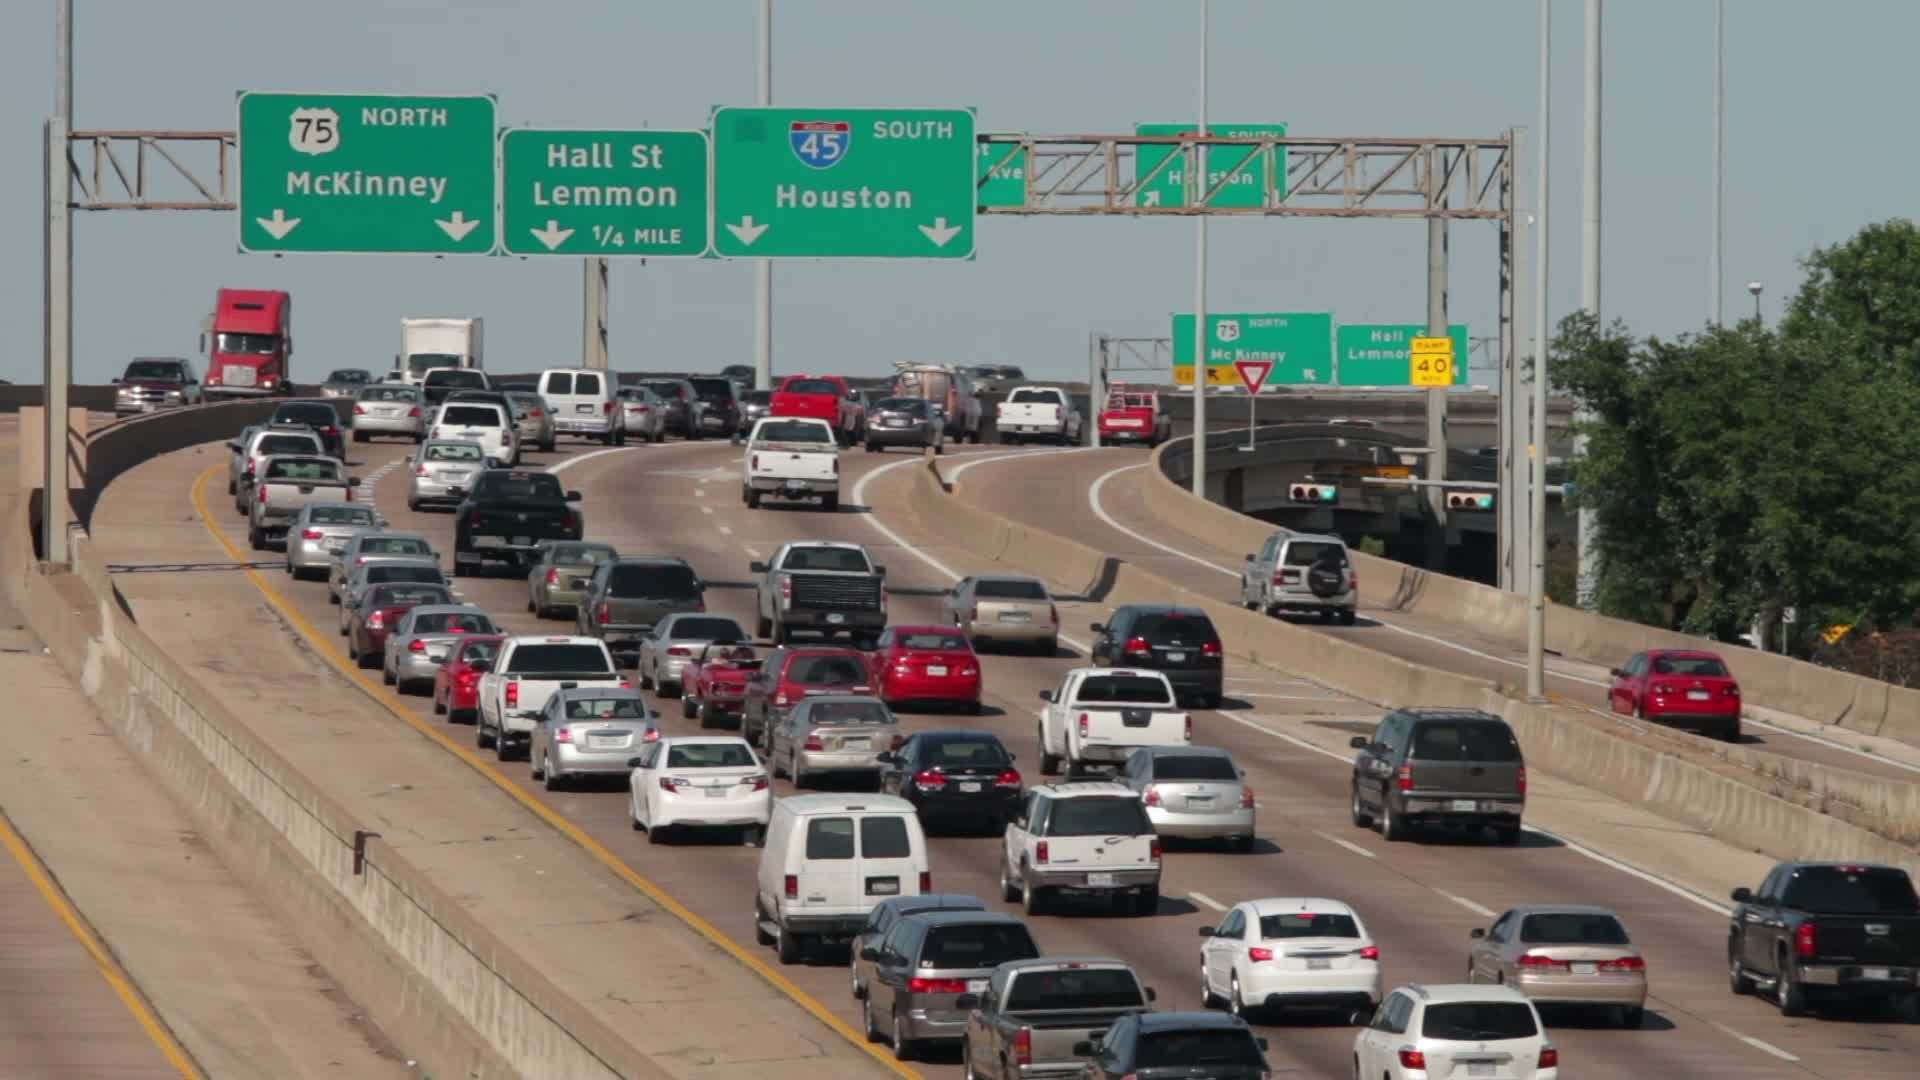 Do not waste your time in heavy Houston traffic, driving